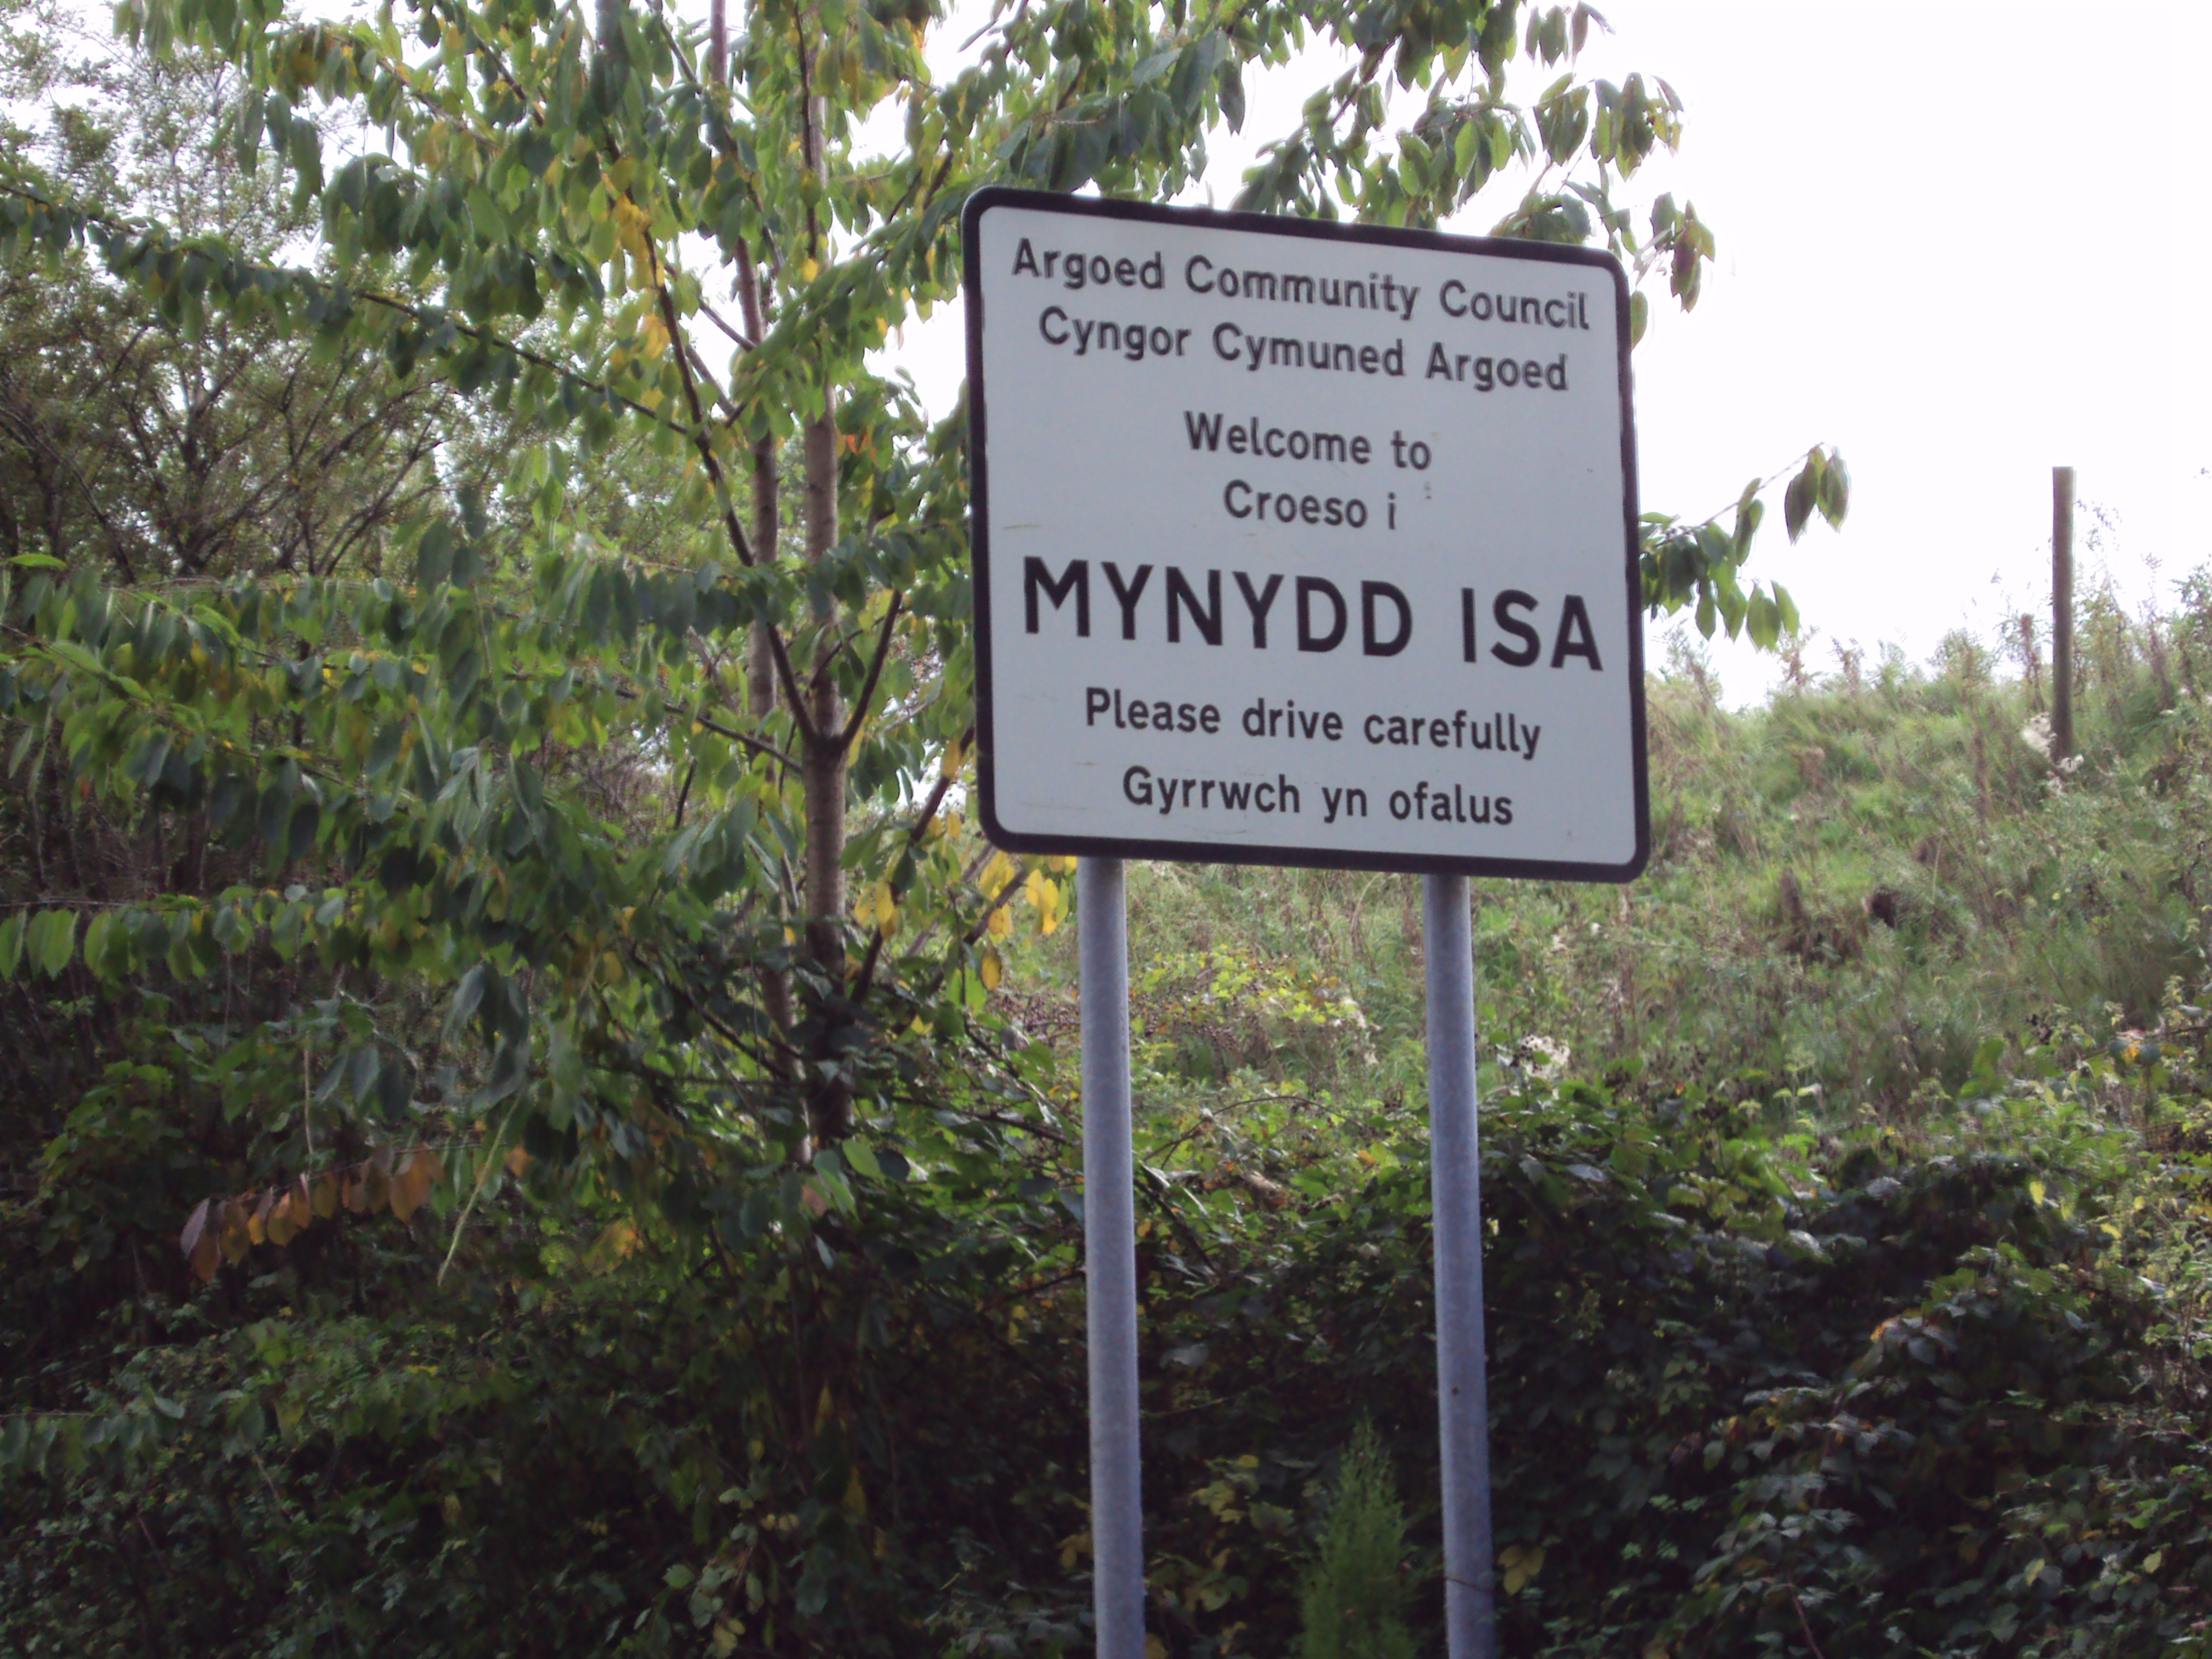 File:Mynydd Isa sign 1.JPG - Wikimedia Commons